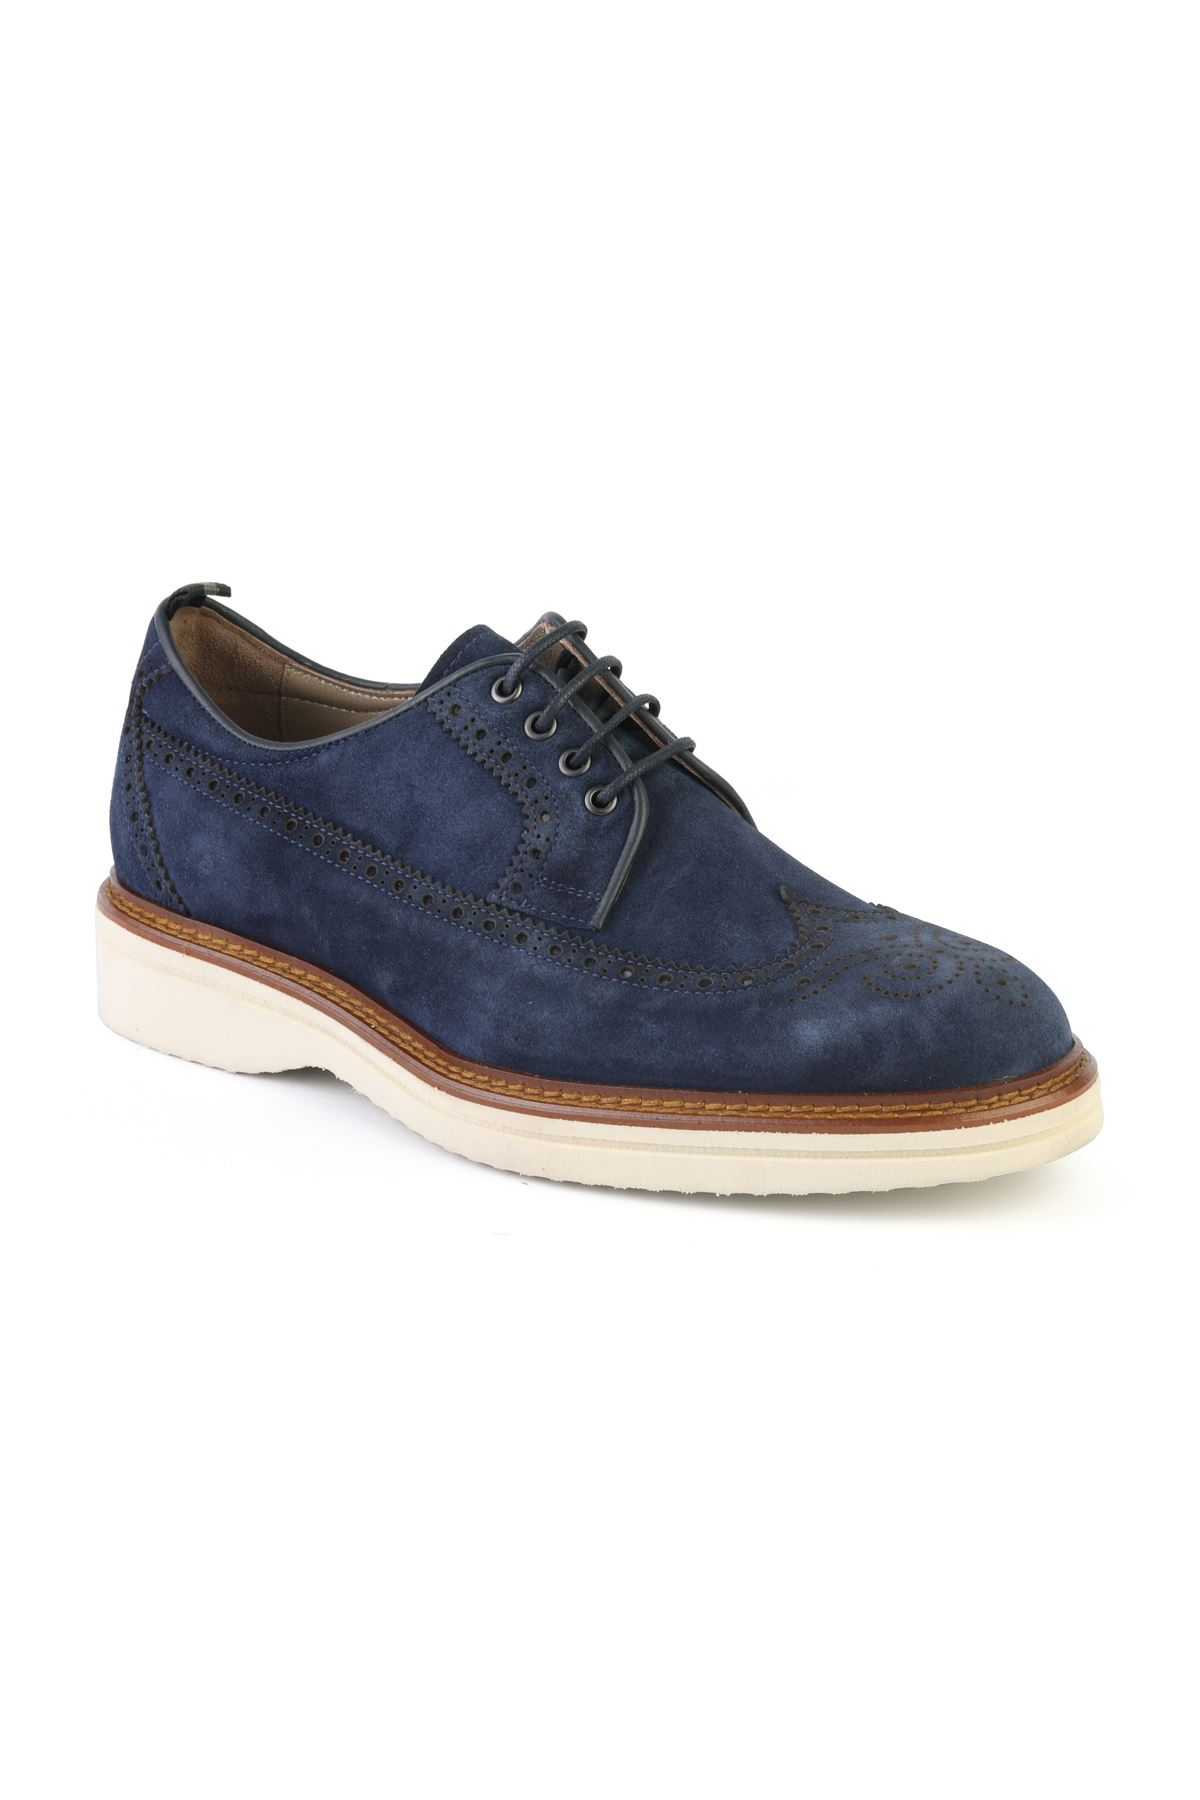 Libero T1121 Navy Blue Casual Shoes